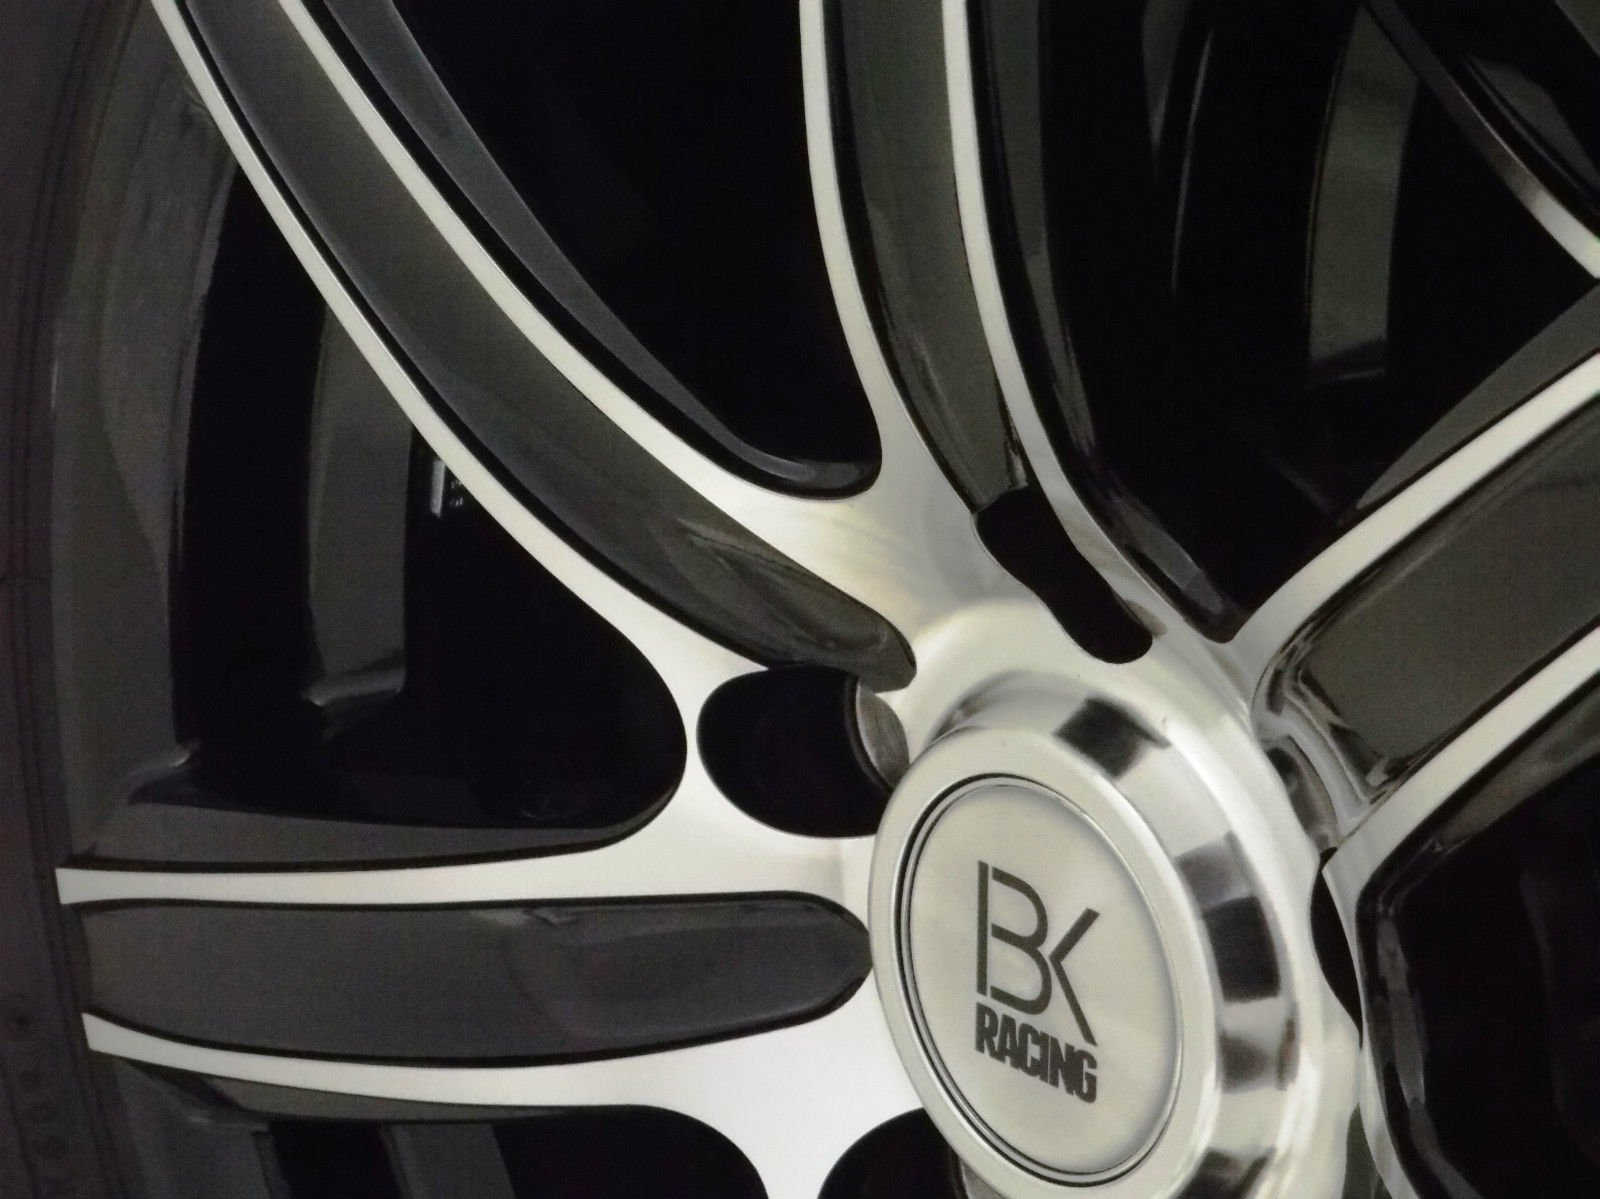 BK Racing BK808 Van Rated VW T5 Alloy Wheels